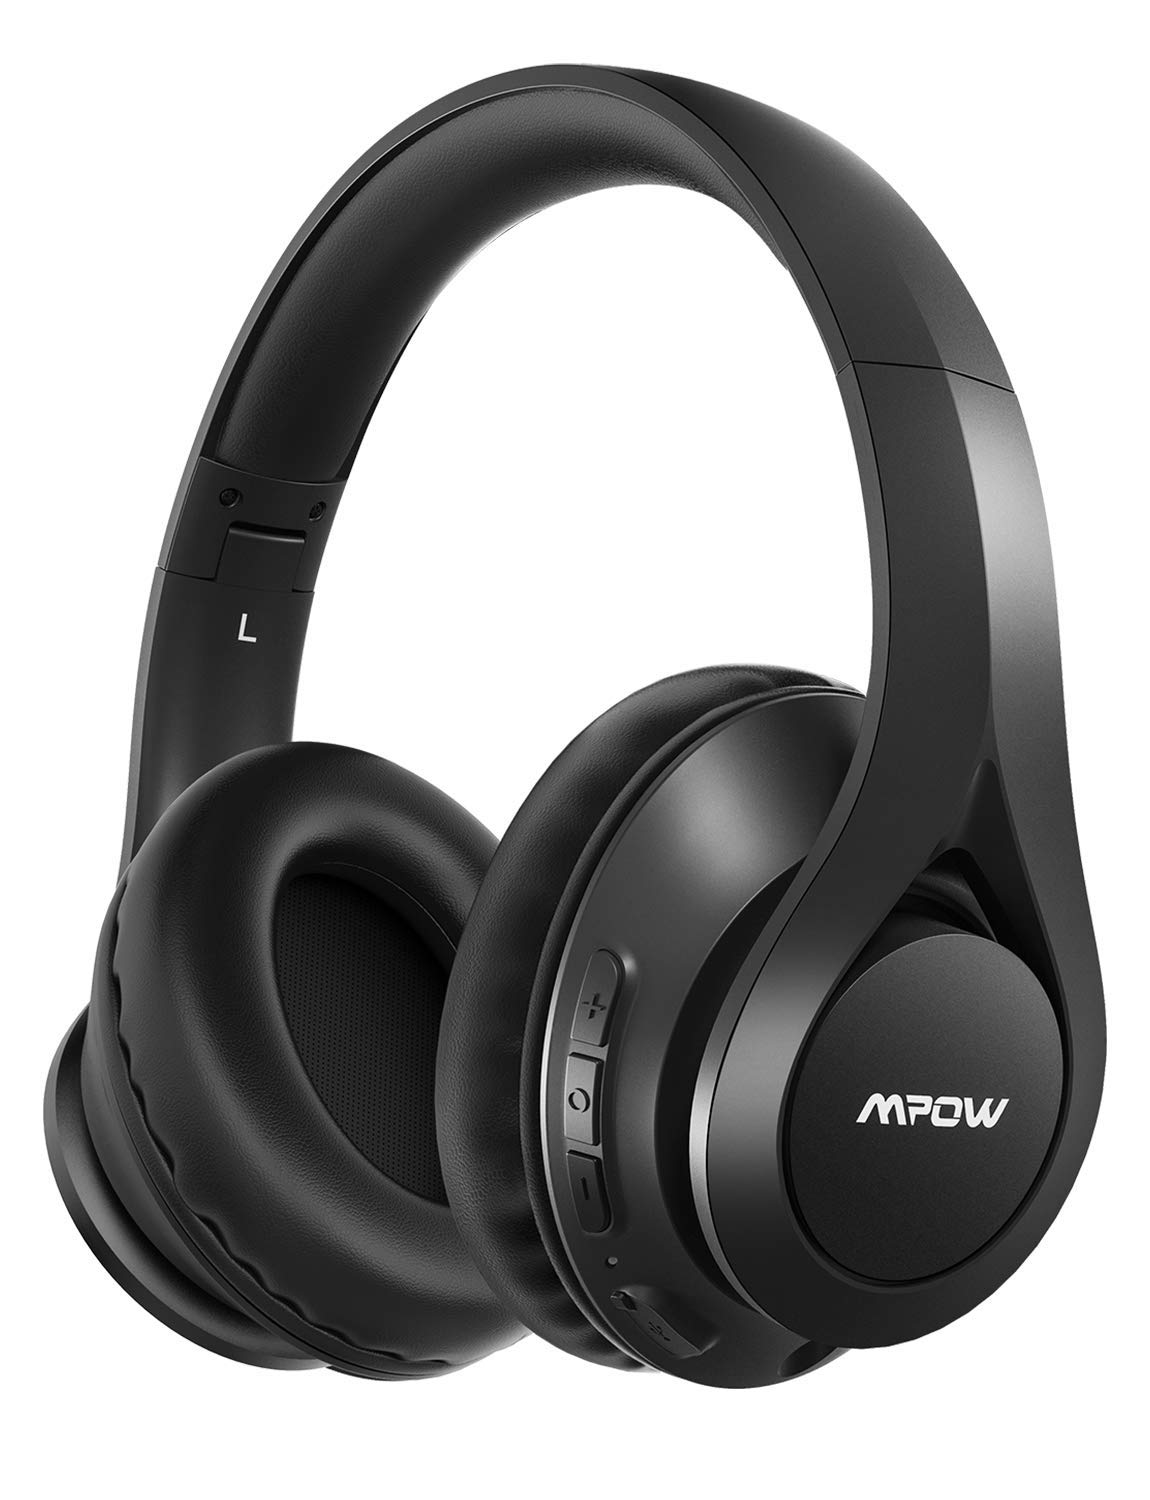 Mpow 059 IPO Bluetooth Headphones, Bluetooth 5.0 Over-Ear Headphones with Mic and Hi-Fi Sound, 20~25H Playtime, Lightweight Foldable Protein Earpads for Travel/Work